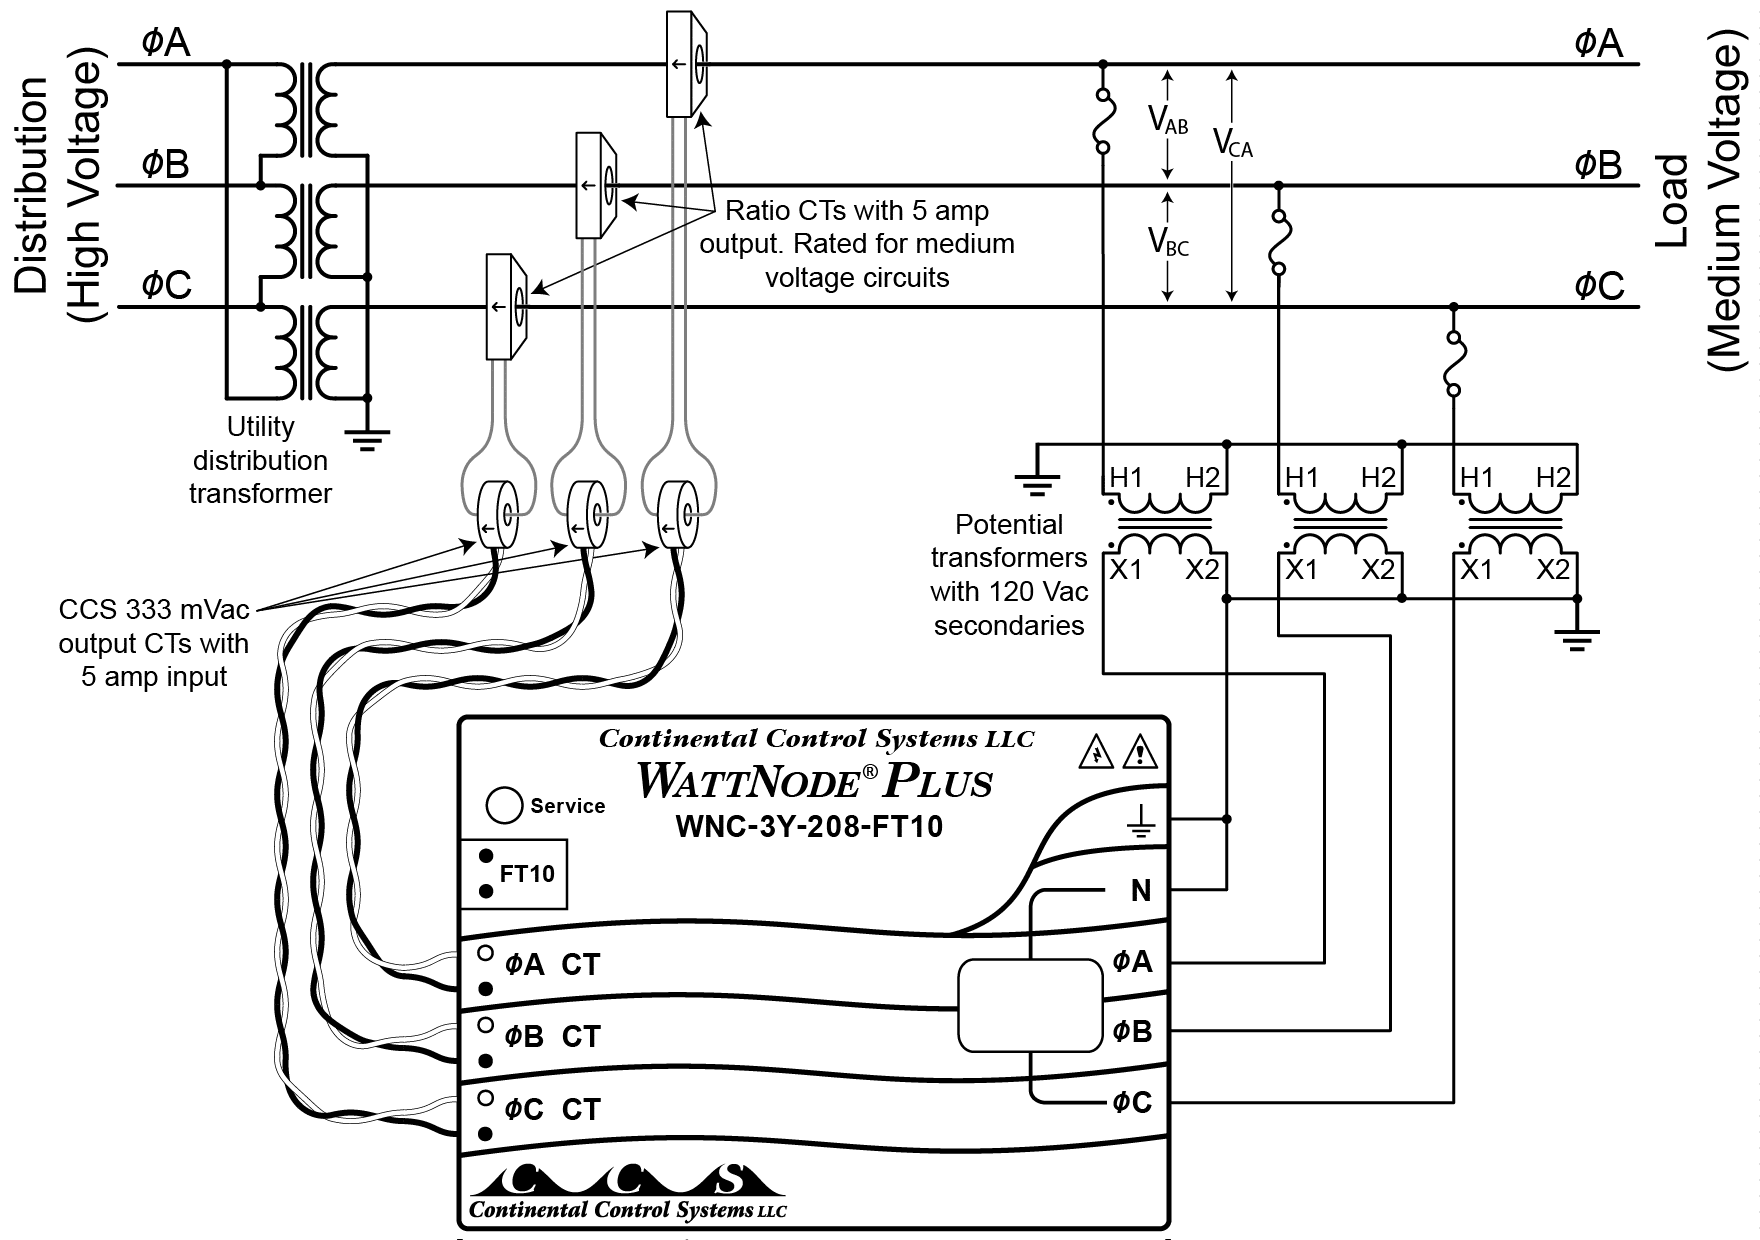 Using Potential Transformers – Continental Control Systems, LLC on 3 phase delta with ground, 3 phase wiring schematic, 3 phase open delta, 3 phase nec color code, 3 phase motor connection diagram, 3 phase sine wave diagram, 3 phase service entrance diagram, 3 phase y wiring-diagram, 3 phase delta phasor diagram, 3 phase power, 3 phase delta transformer, 480 volt delta diagram, delta connection diagram, 3 phase wye-delta diagram, open delta diagram, 3 phase delta vs wye, 3 phase delta generator, 3 phase system, 3 phase delta corner ground, 3 phase motor circuit diagram,